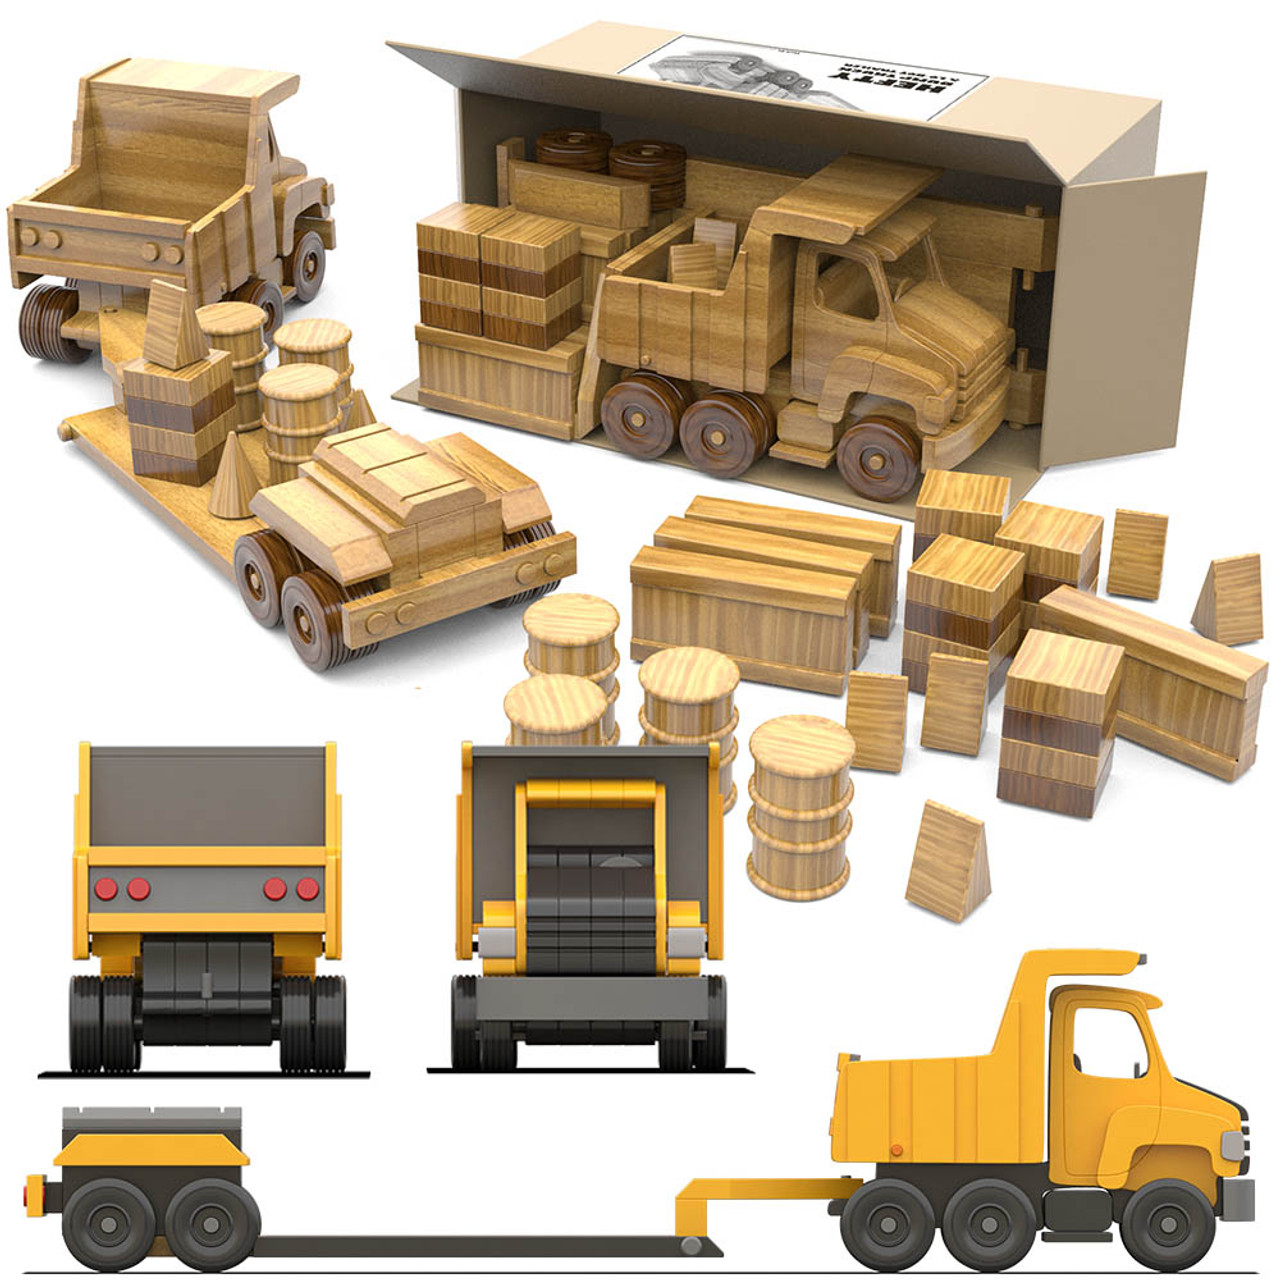 hefty dump truck and lo-boy trailer wood toy plans (pdf download)